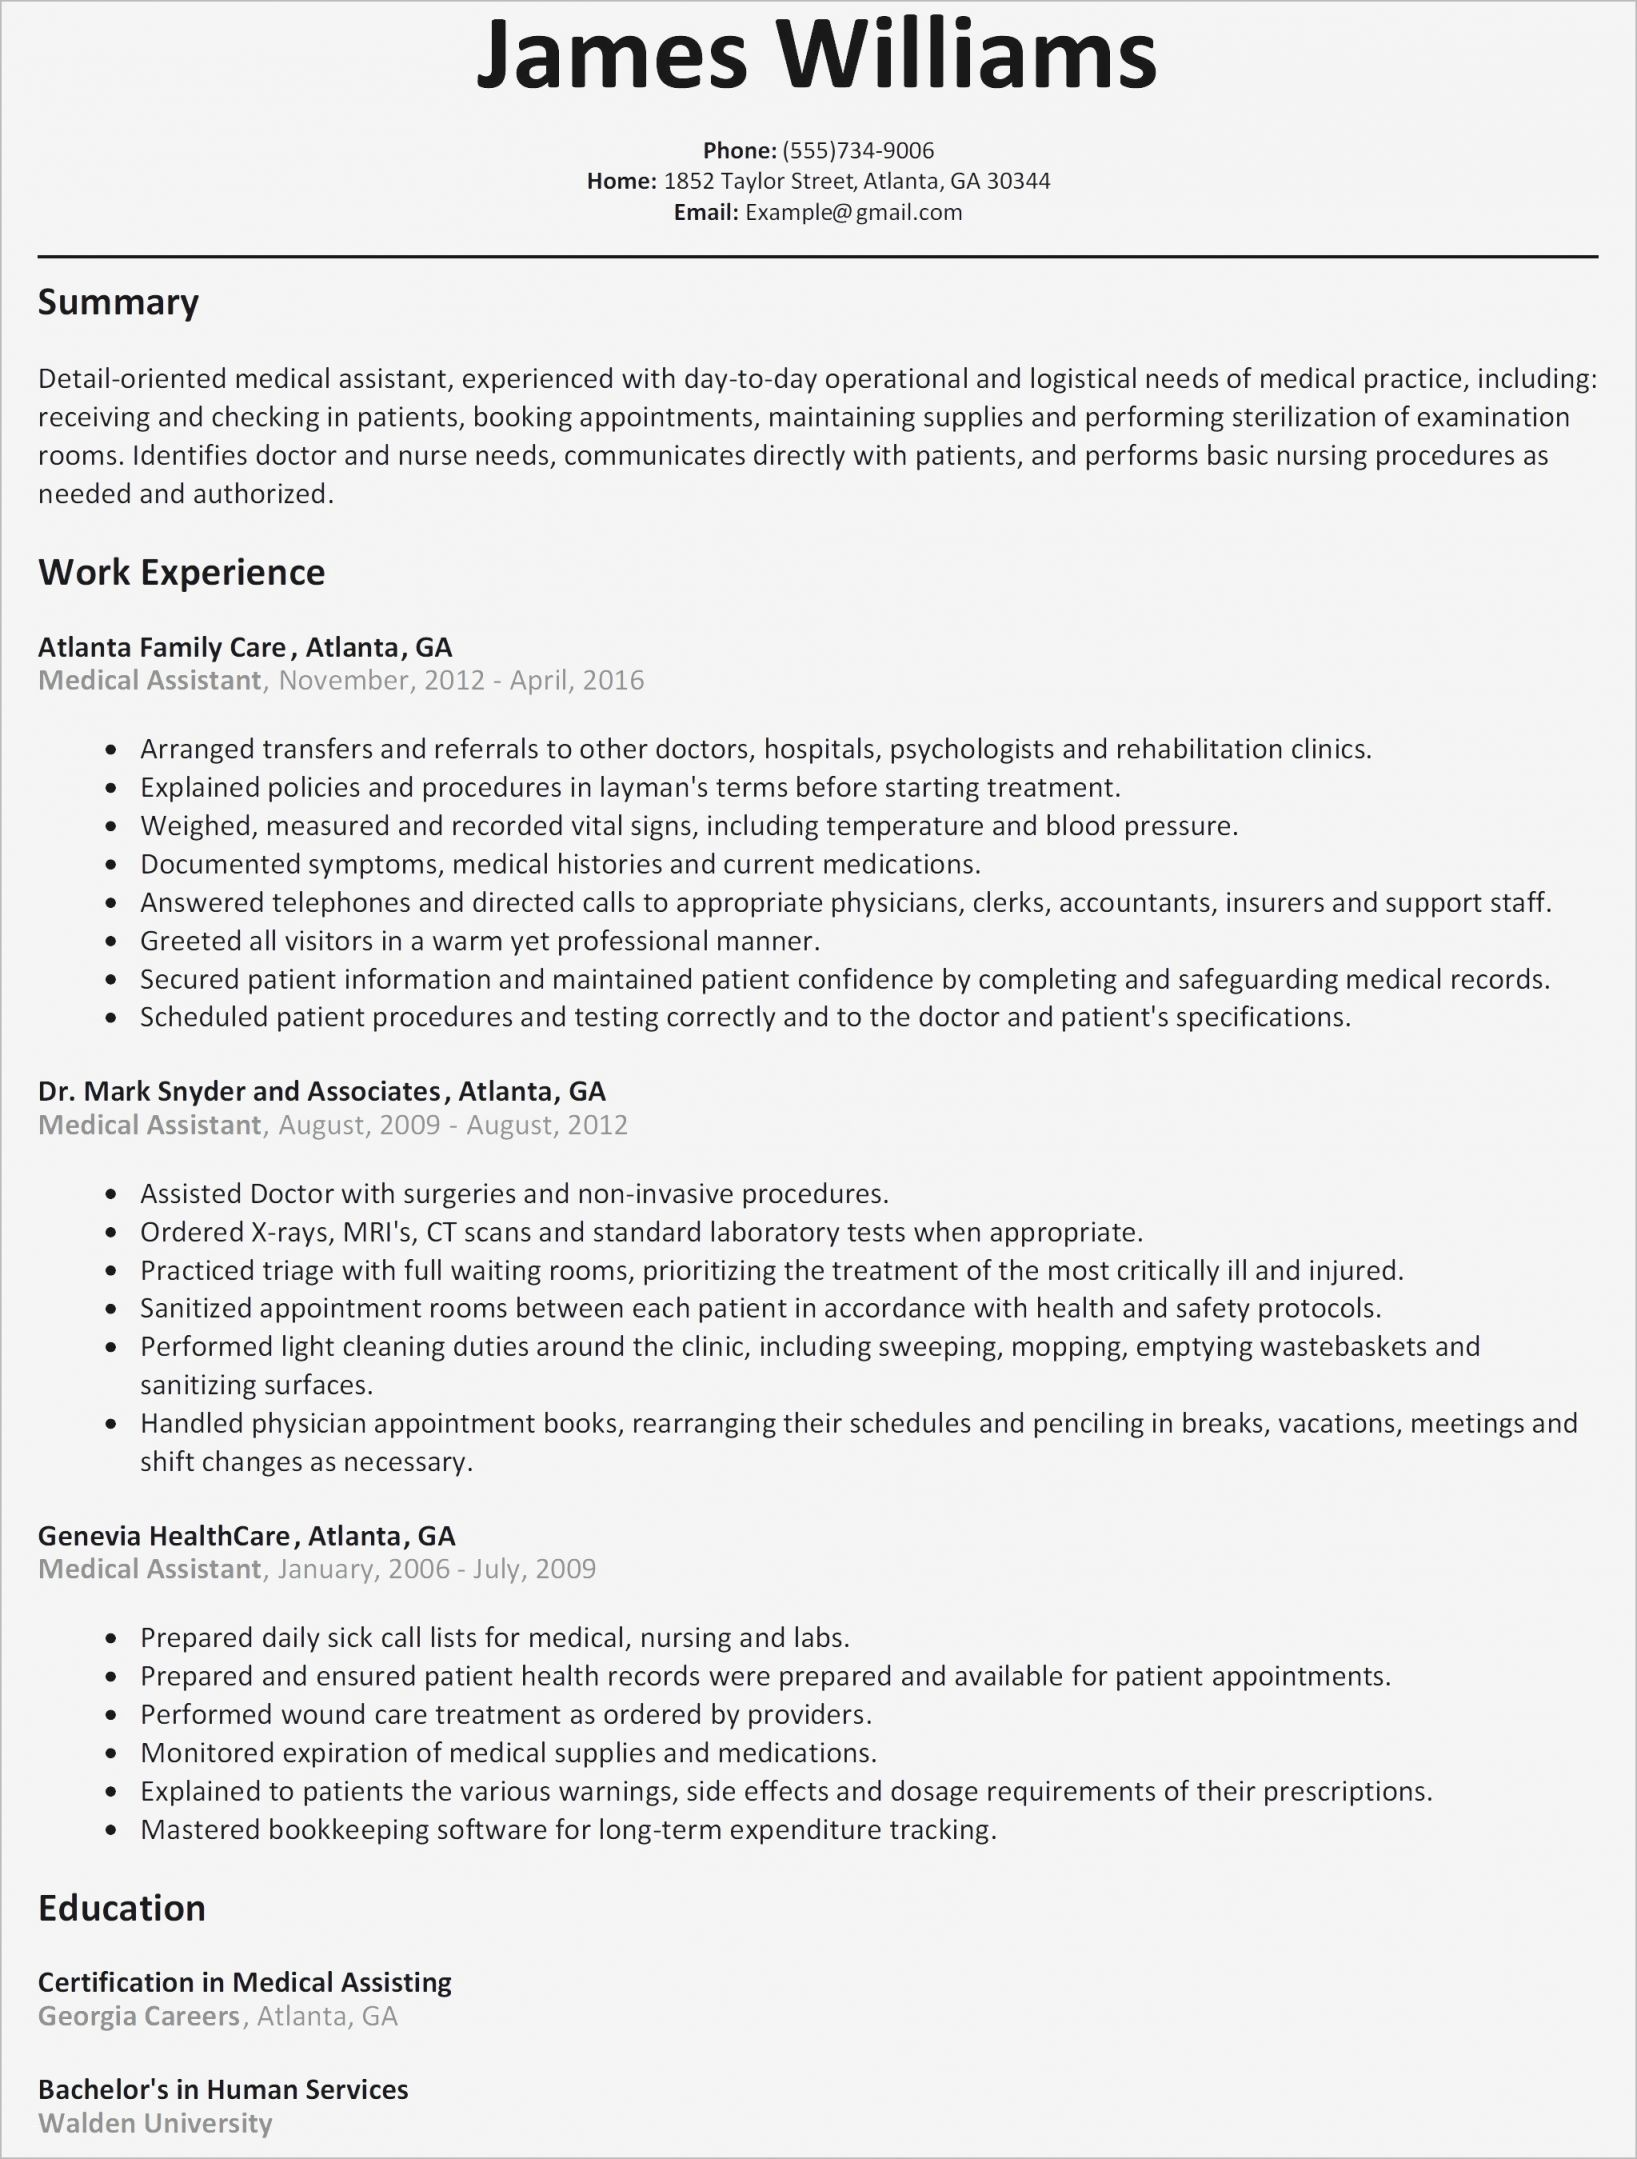 Awesome Summary A Resume Unique Automotive Resume Beautiful Bsn Resume Automotive Engineering Resume pr6